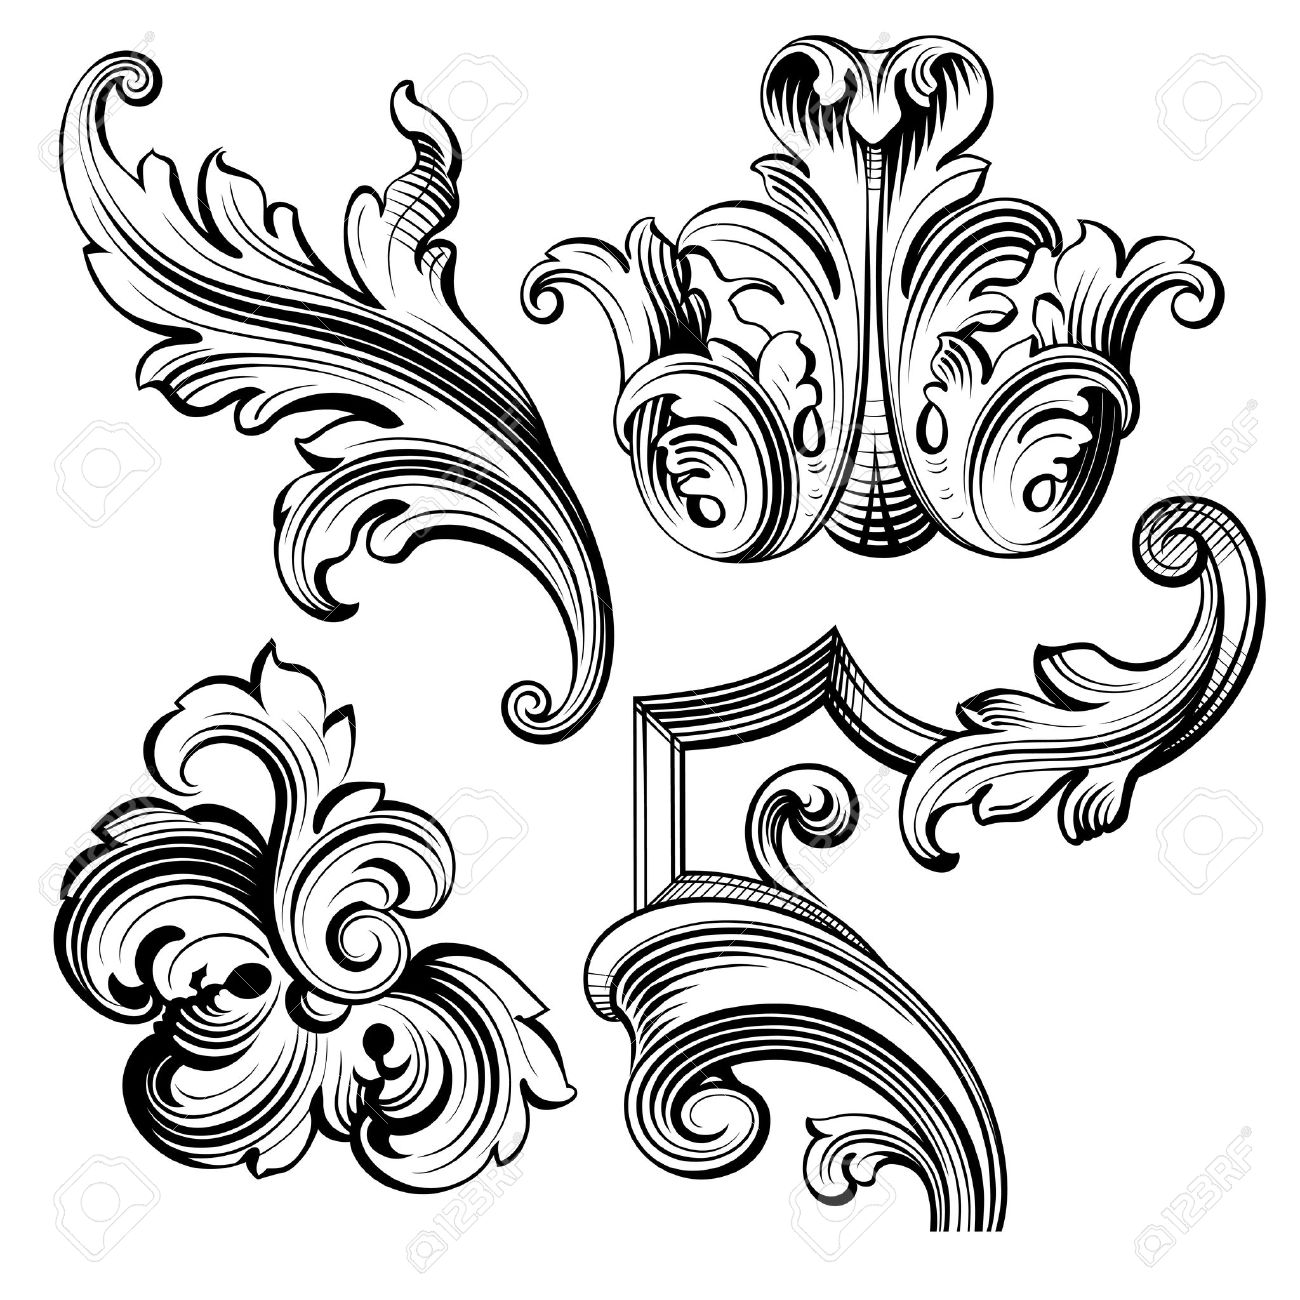 vintage frame tattoo designs. Vector - Vintage Baroque Victorian Frame Border Monogram Floral Ornament Leaf Scroll Engraved Retro Flower Pattern Decorative Design Tattoo Black And White Designs